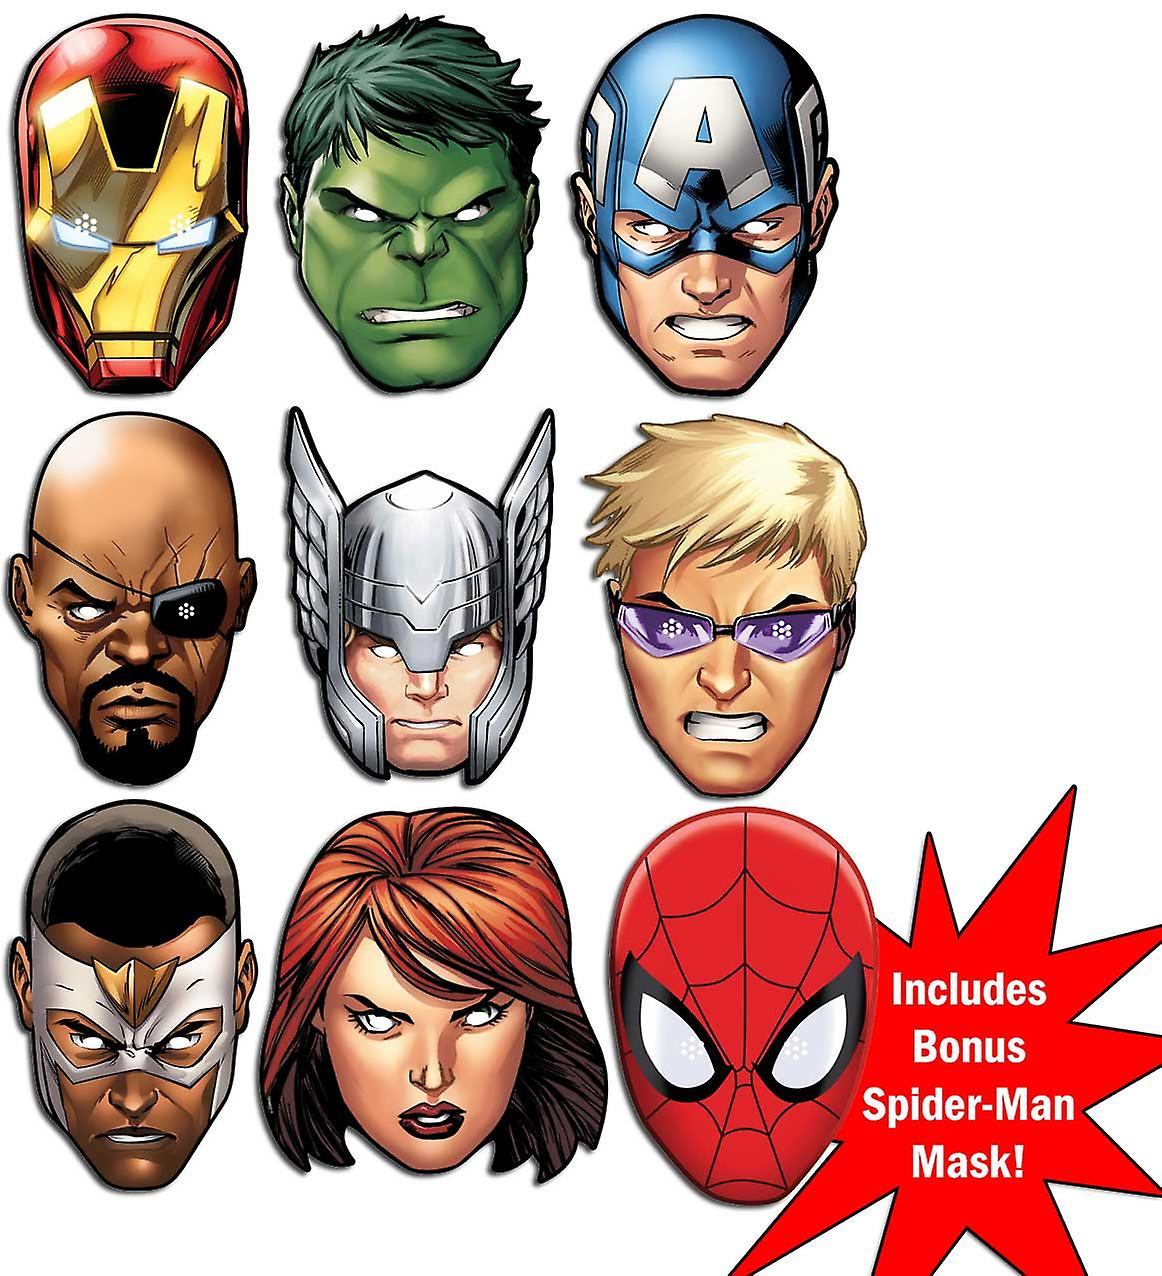 Marvel's The Avengers Ultimate Super Hero Set of 9 Variety Face Mask Pack